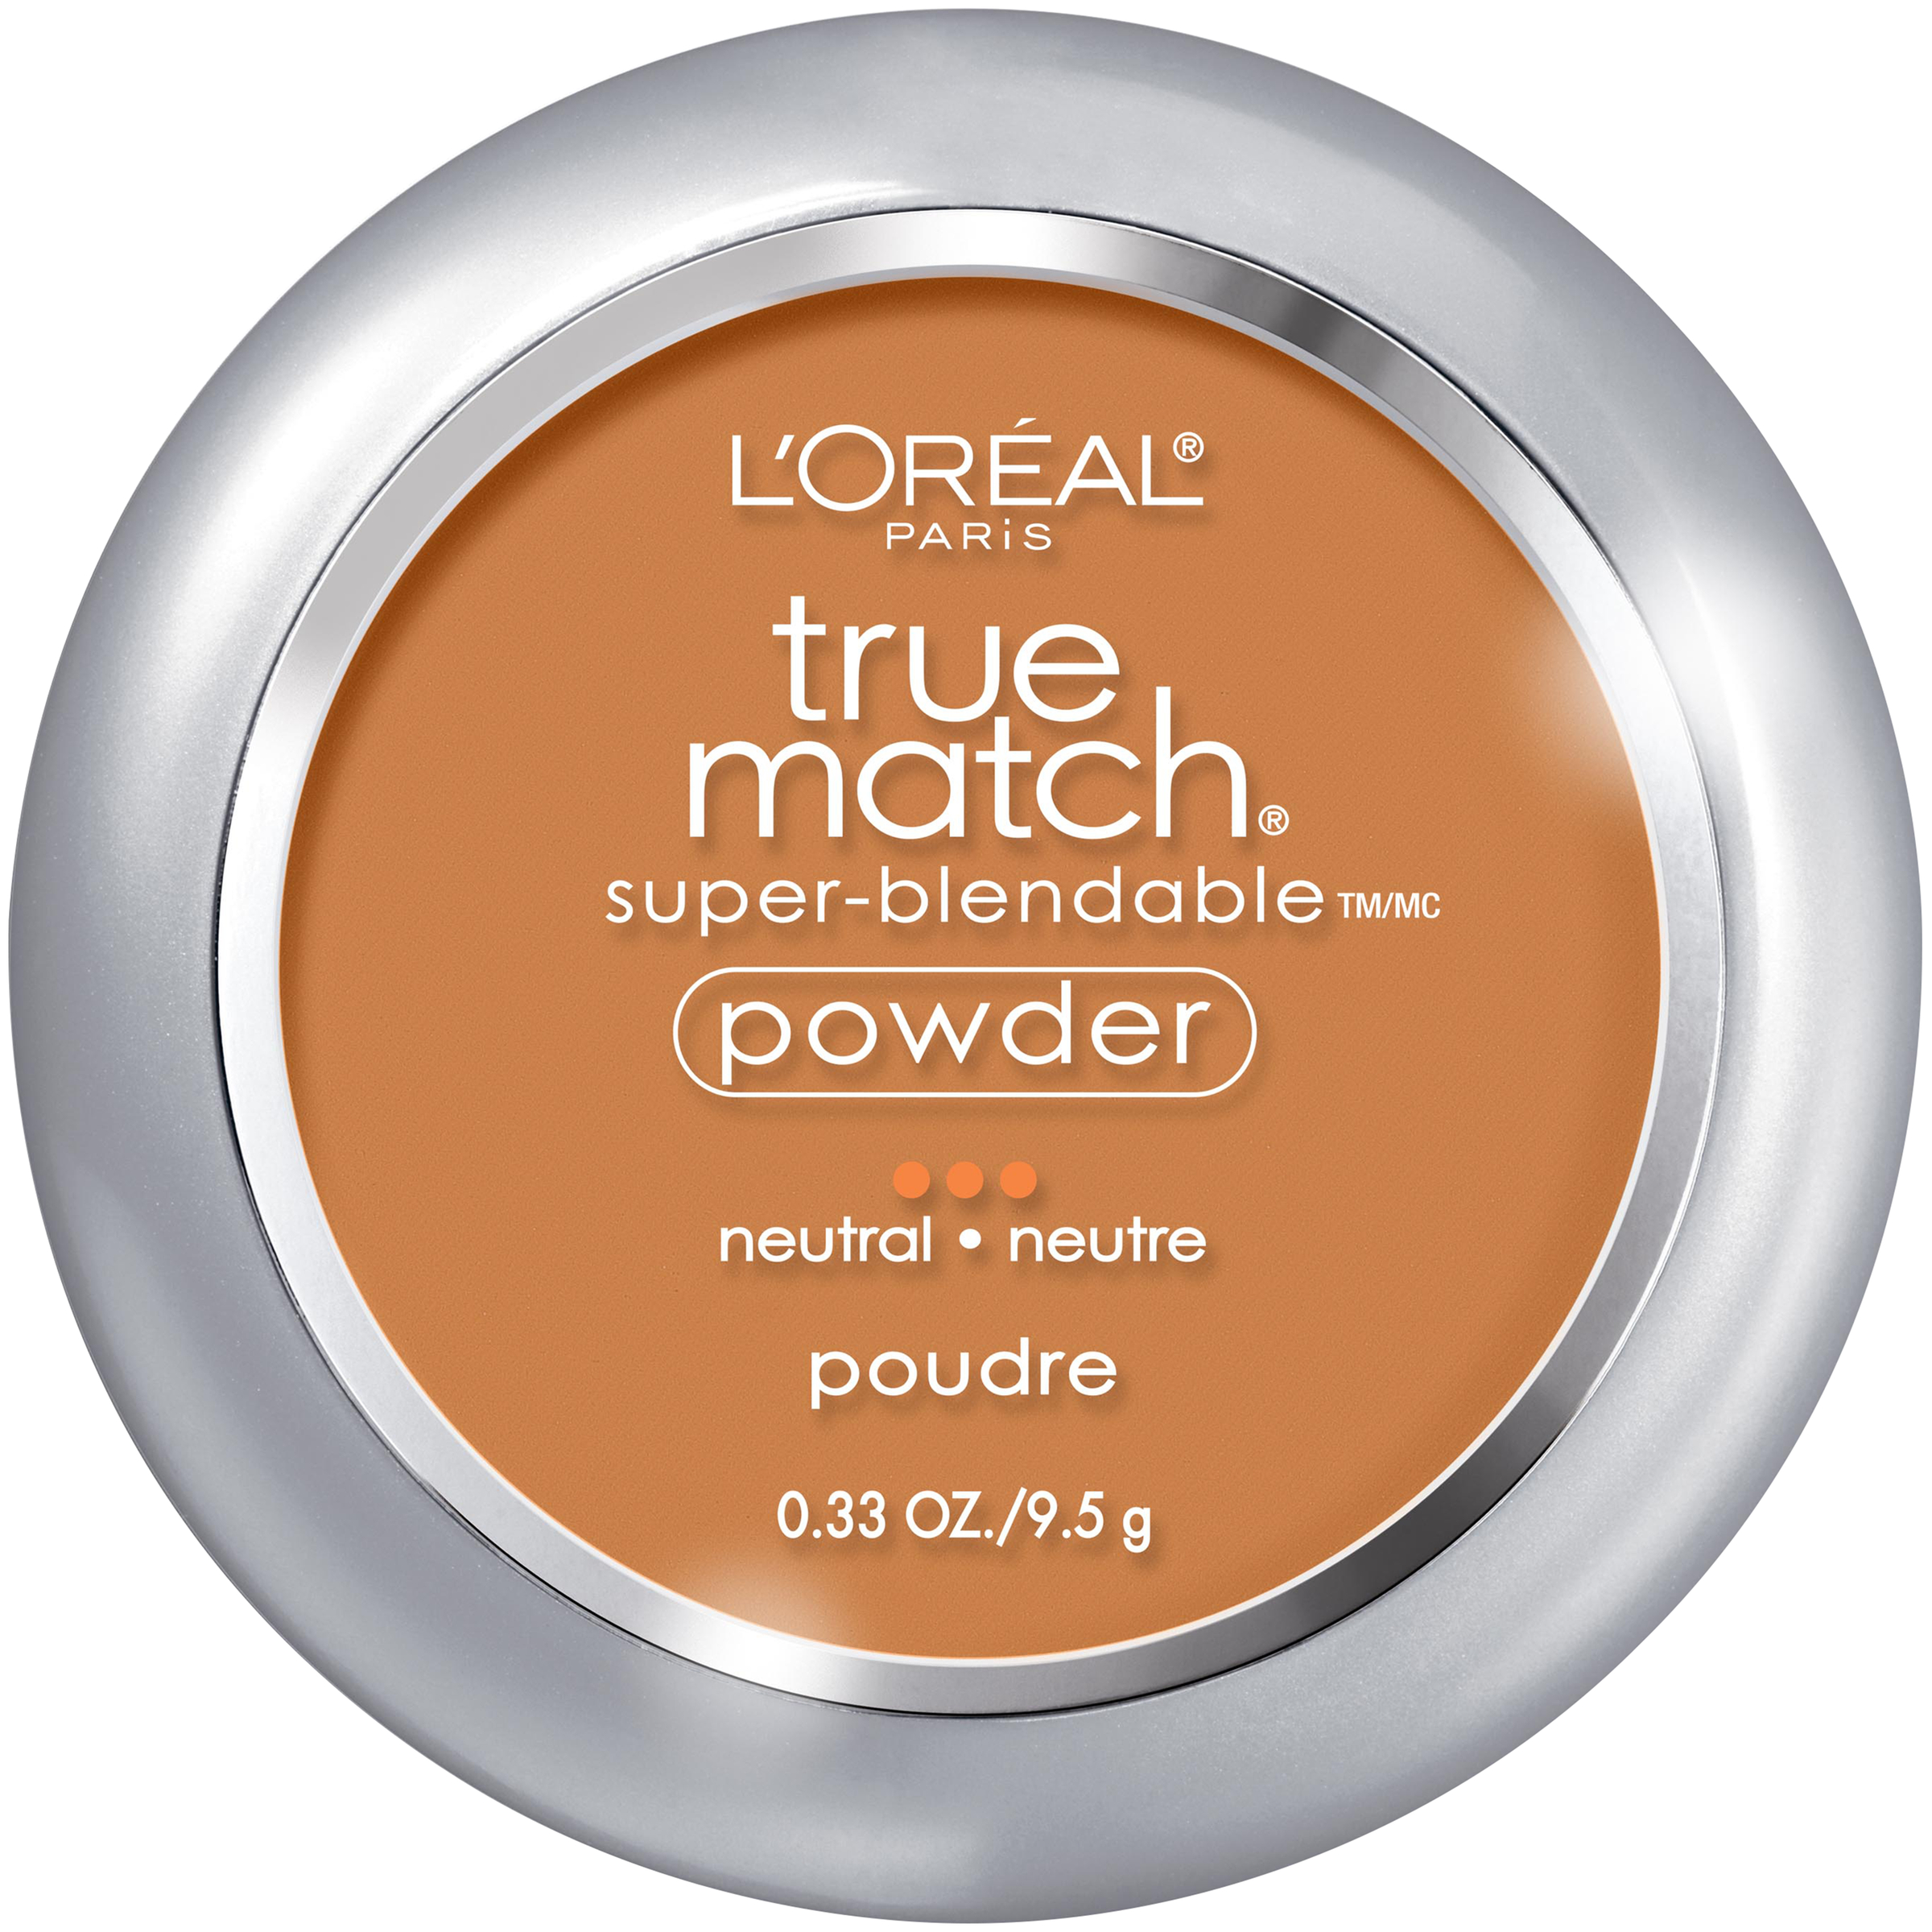 L'Oreal Paris True Match Super-Blendable Powder, Deep Golden